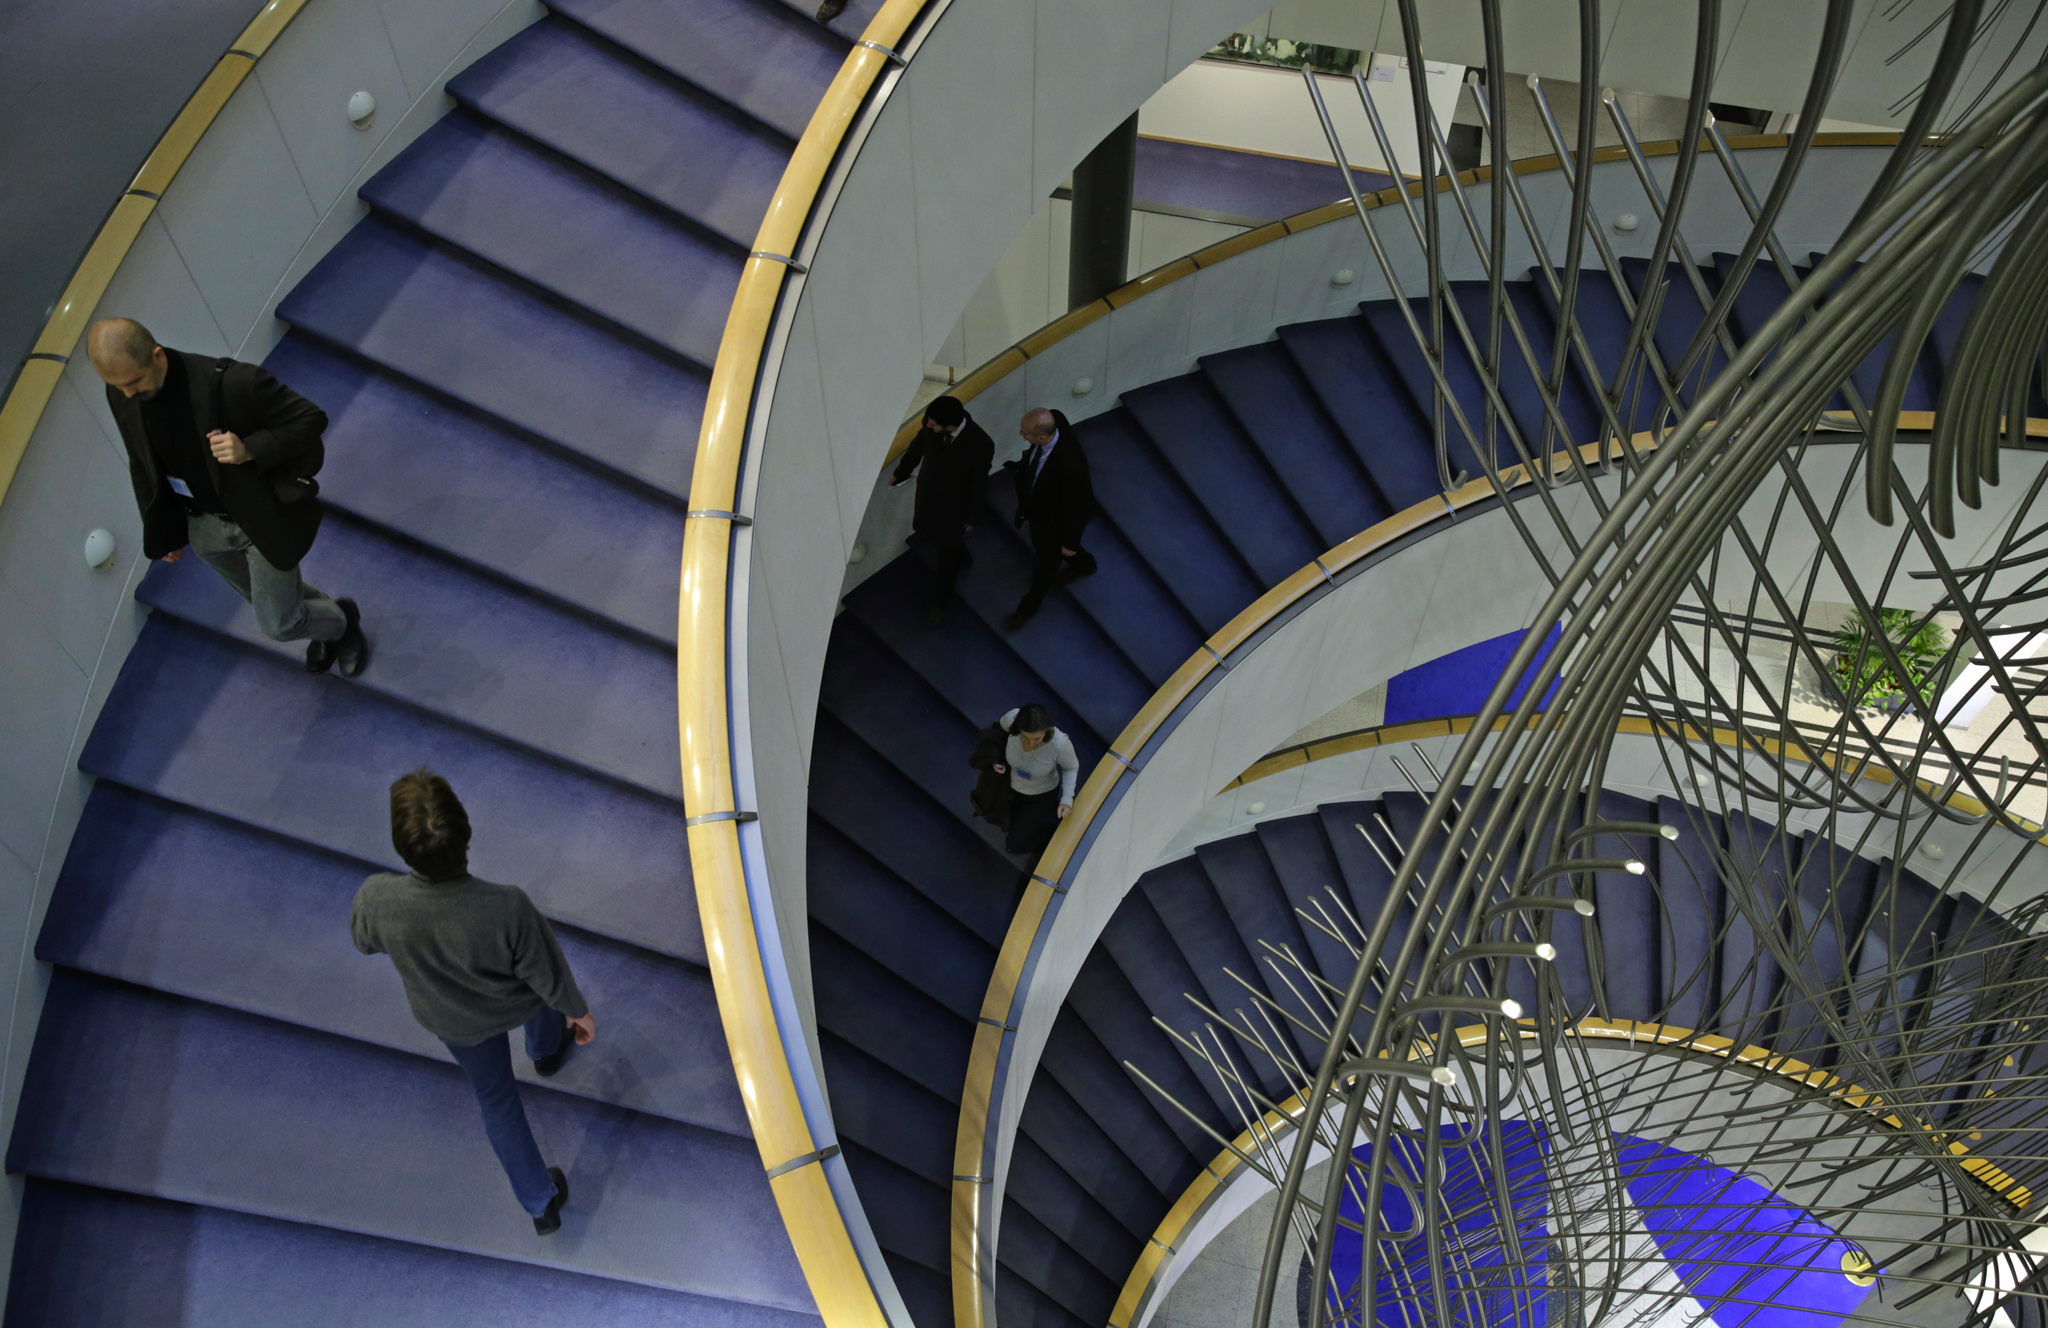 People walk the stairs of the European Parliament building, in Brussels.